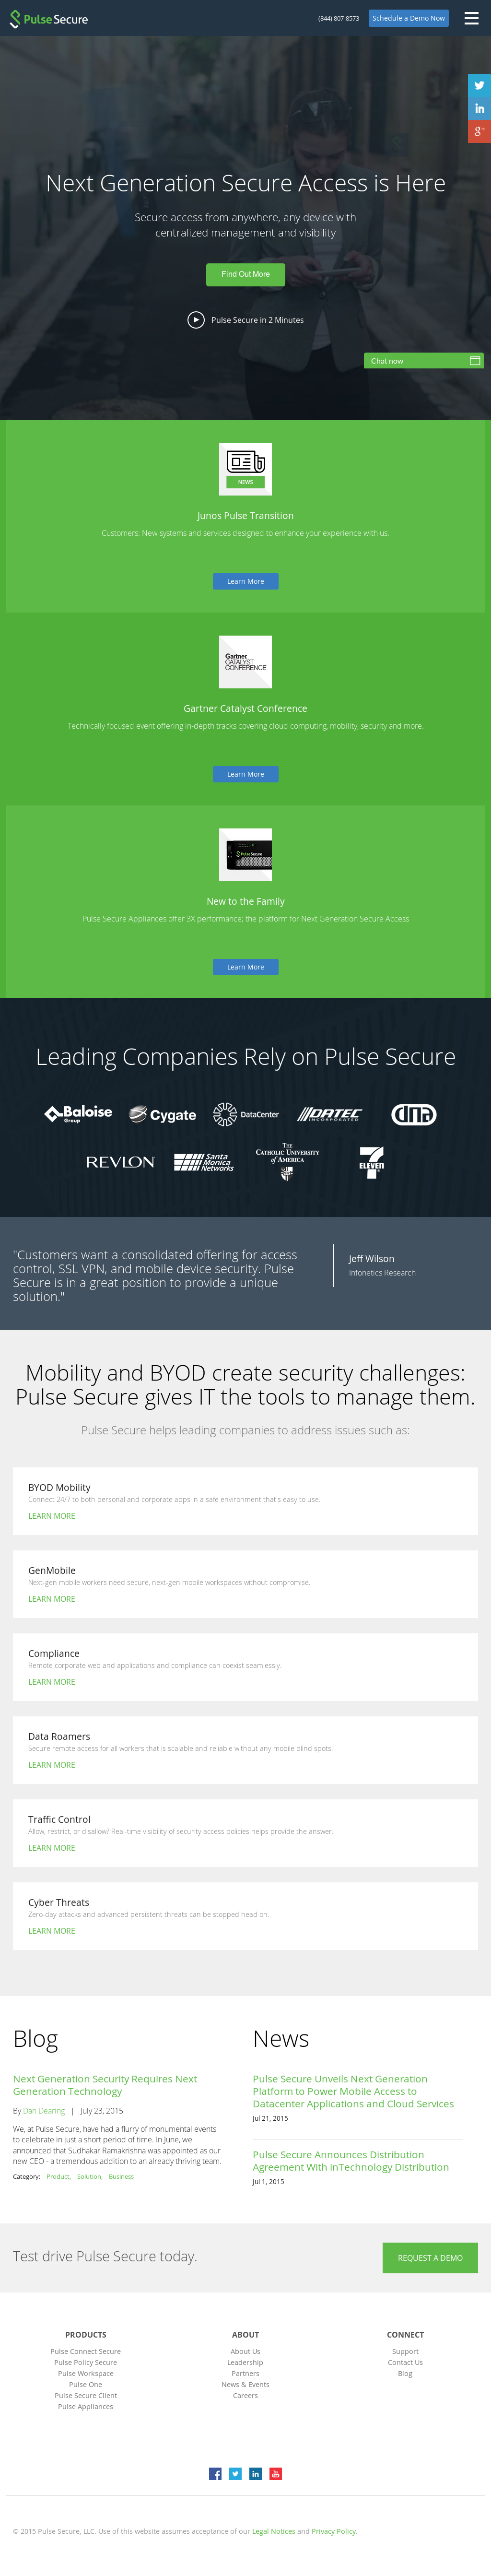 Pulse Secure Competitors, Revenue and Employees - Owler